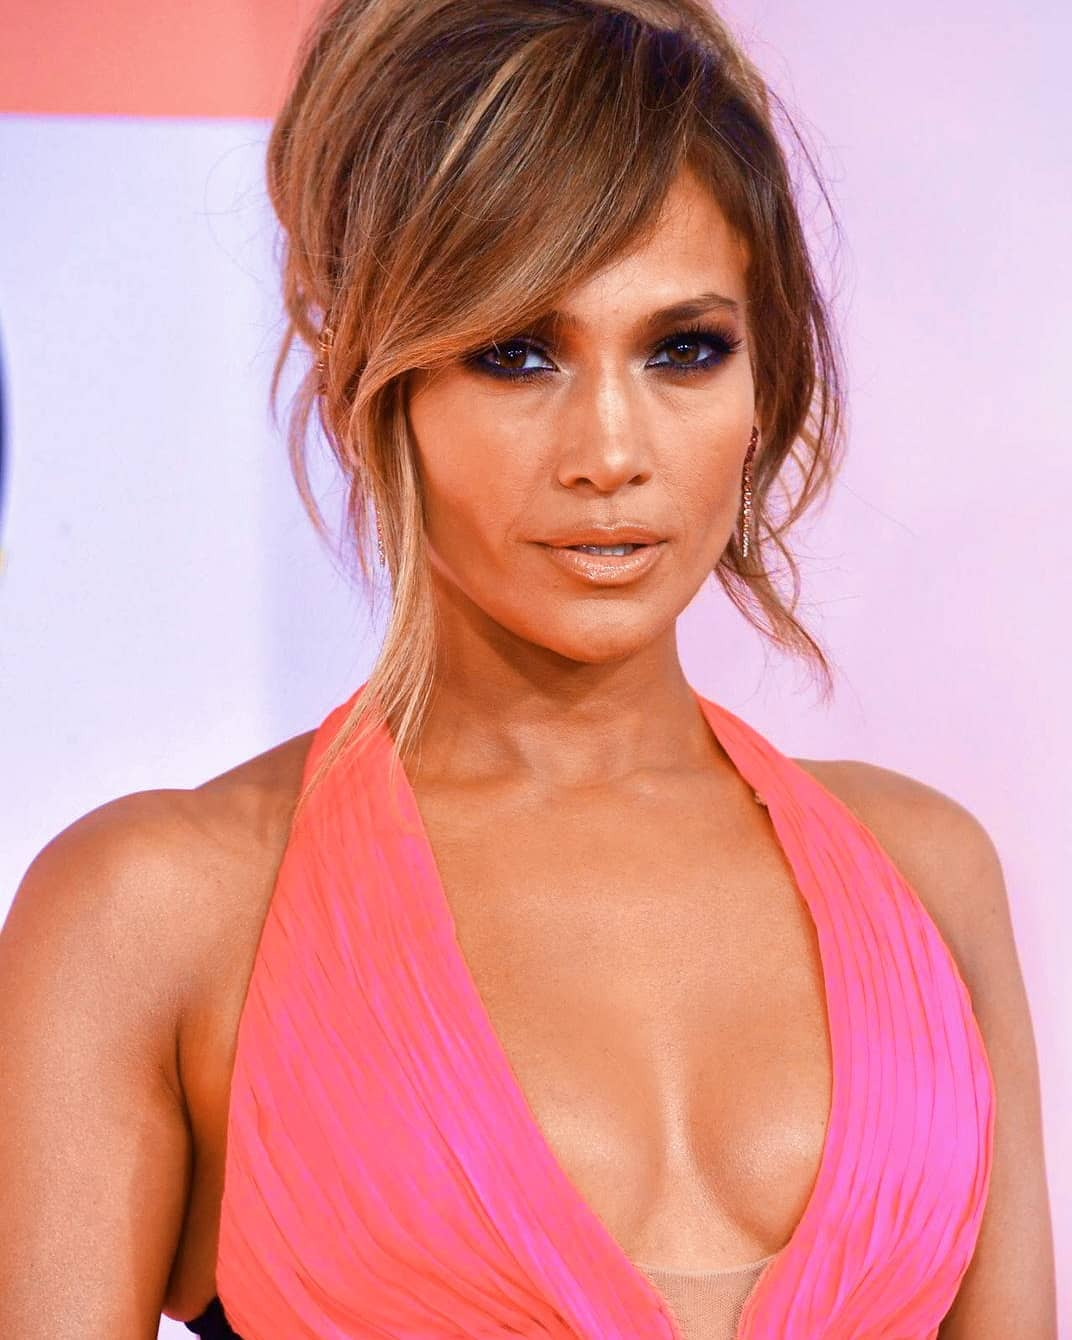 Jennifer Lopez Looks So Hot in this Photo Gallery